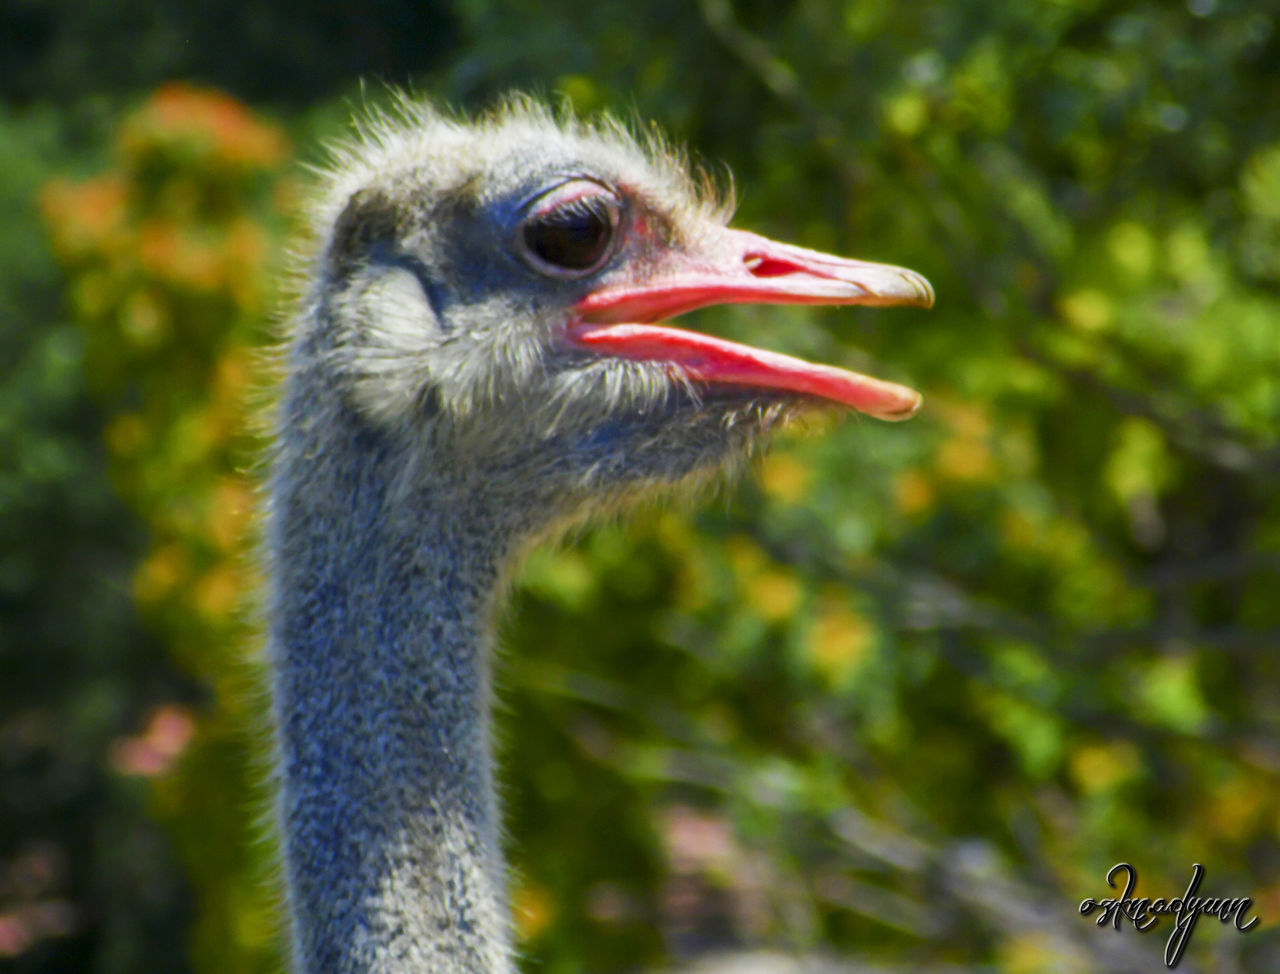 bird, animal themes, one animal, focus on foreground, close-up, animal head, day, animals in the wild, no people, beak, nature, animal wildlife, ostrich, outdoors